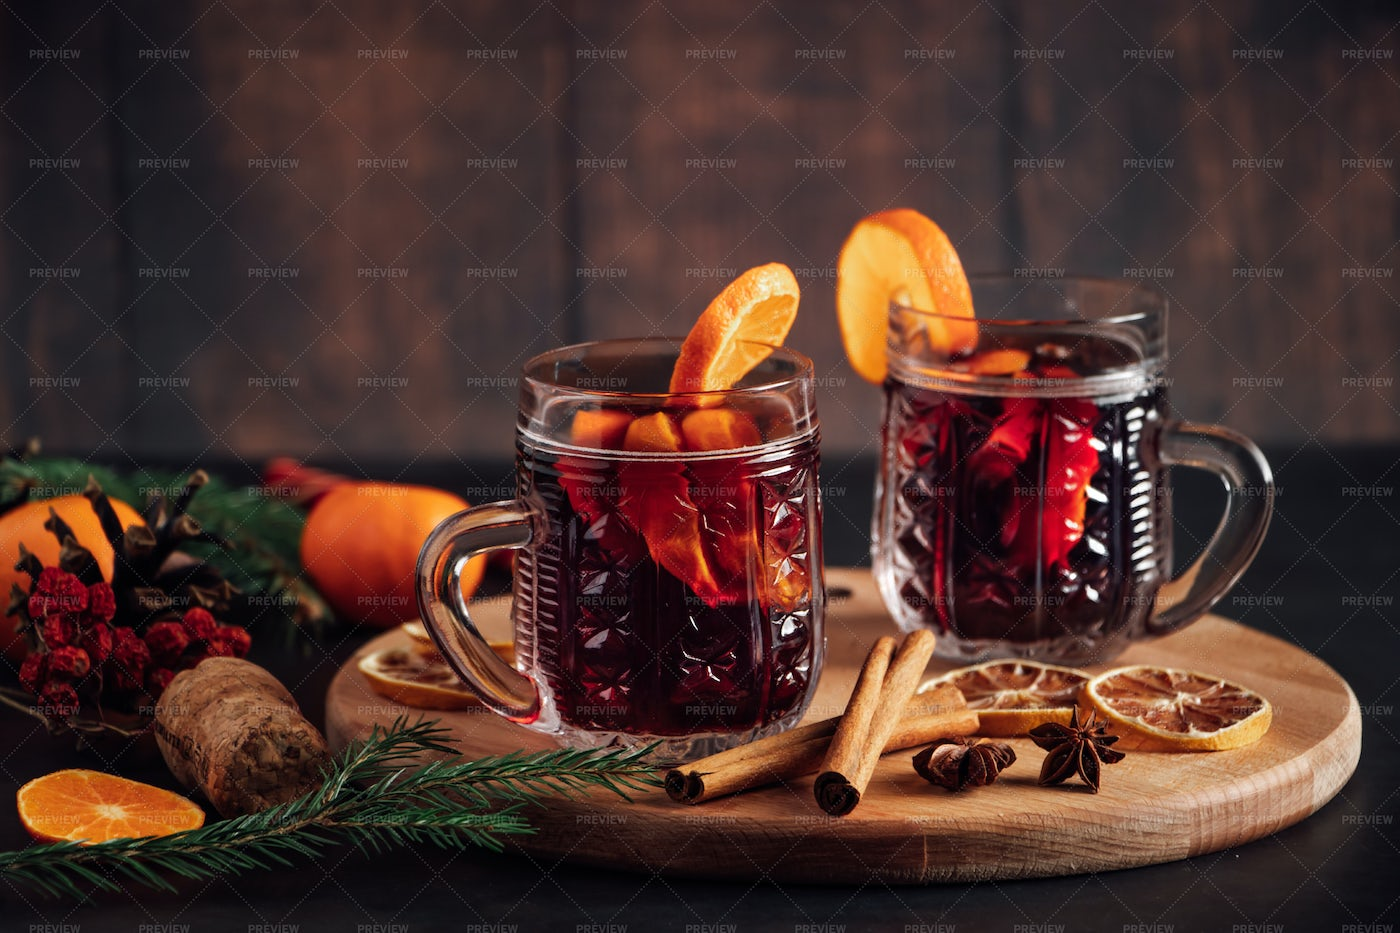 Hot Mulled Wine In Glass Cup: Stock Photos